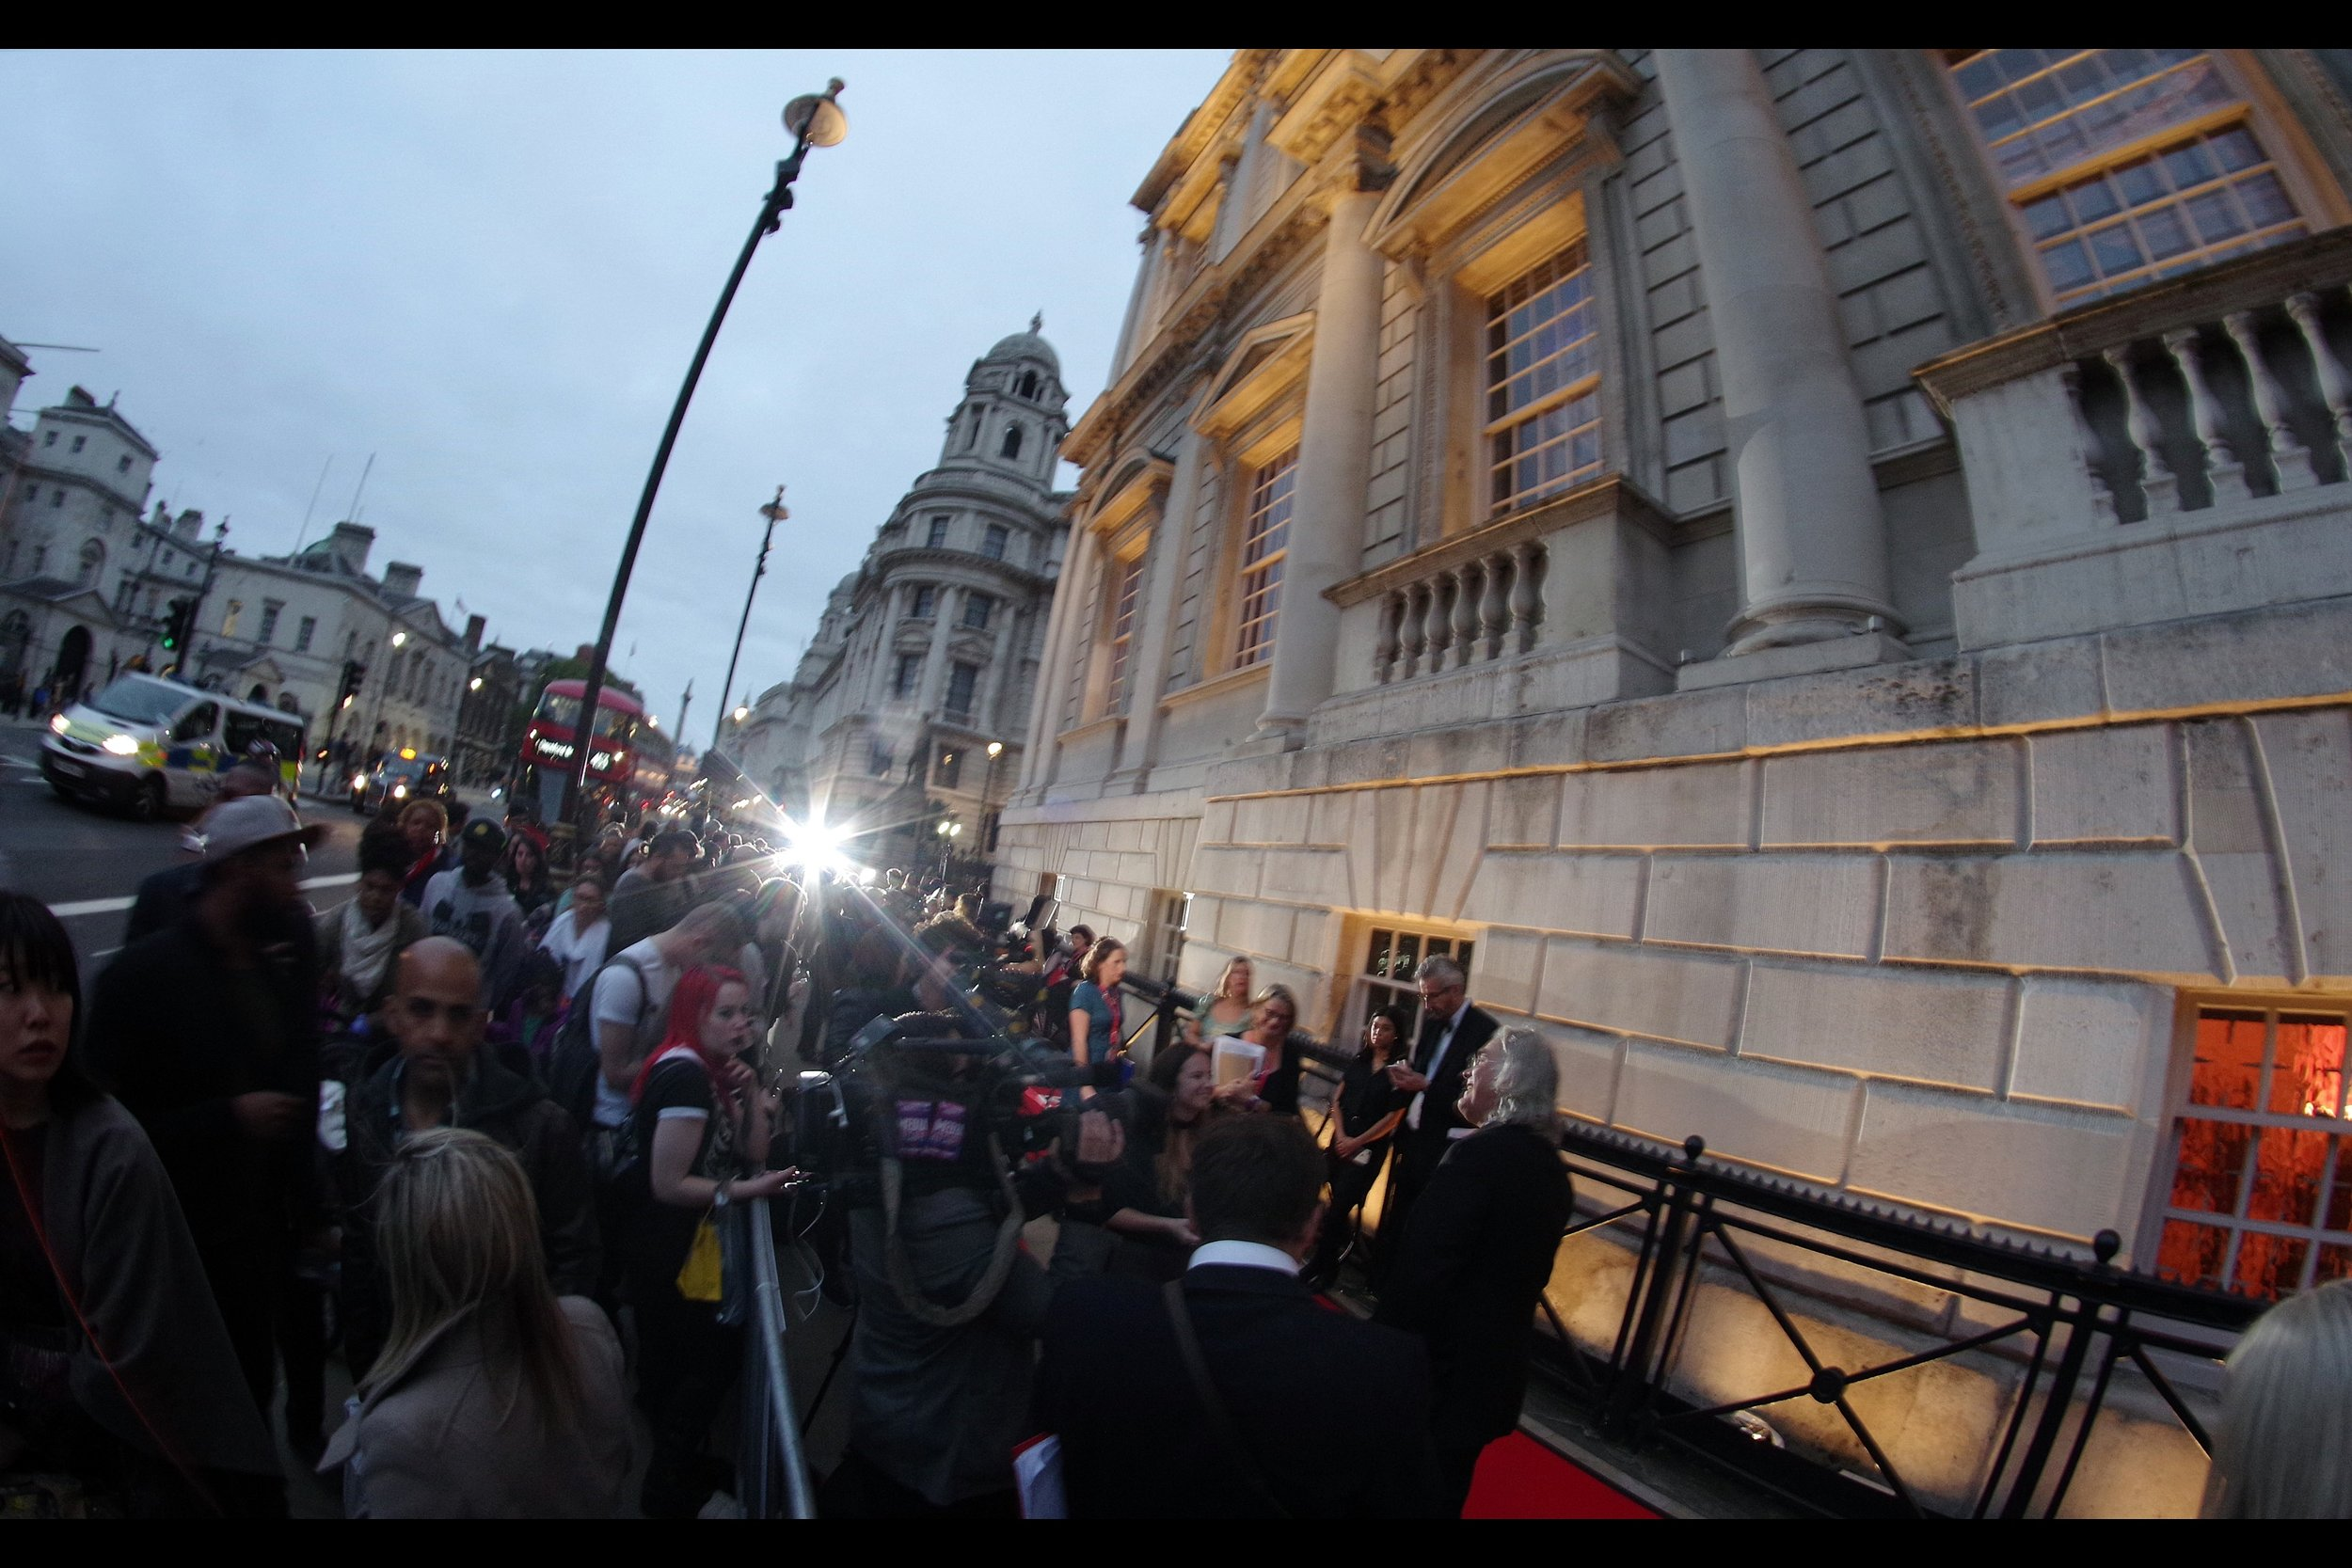 """So there was was, on a footpath on Whitehall, right near 10 Downing Street and Parliament, having run (and/or sauntered) from the Joaquin Phoenix premiere for   """"You Were Never Really Here""""   to be .... here."""